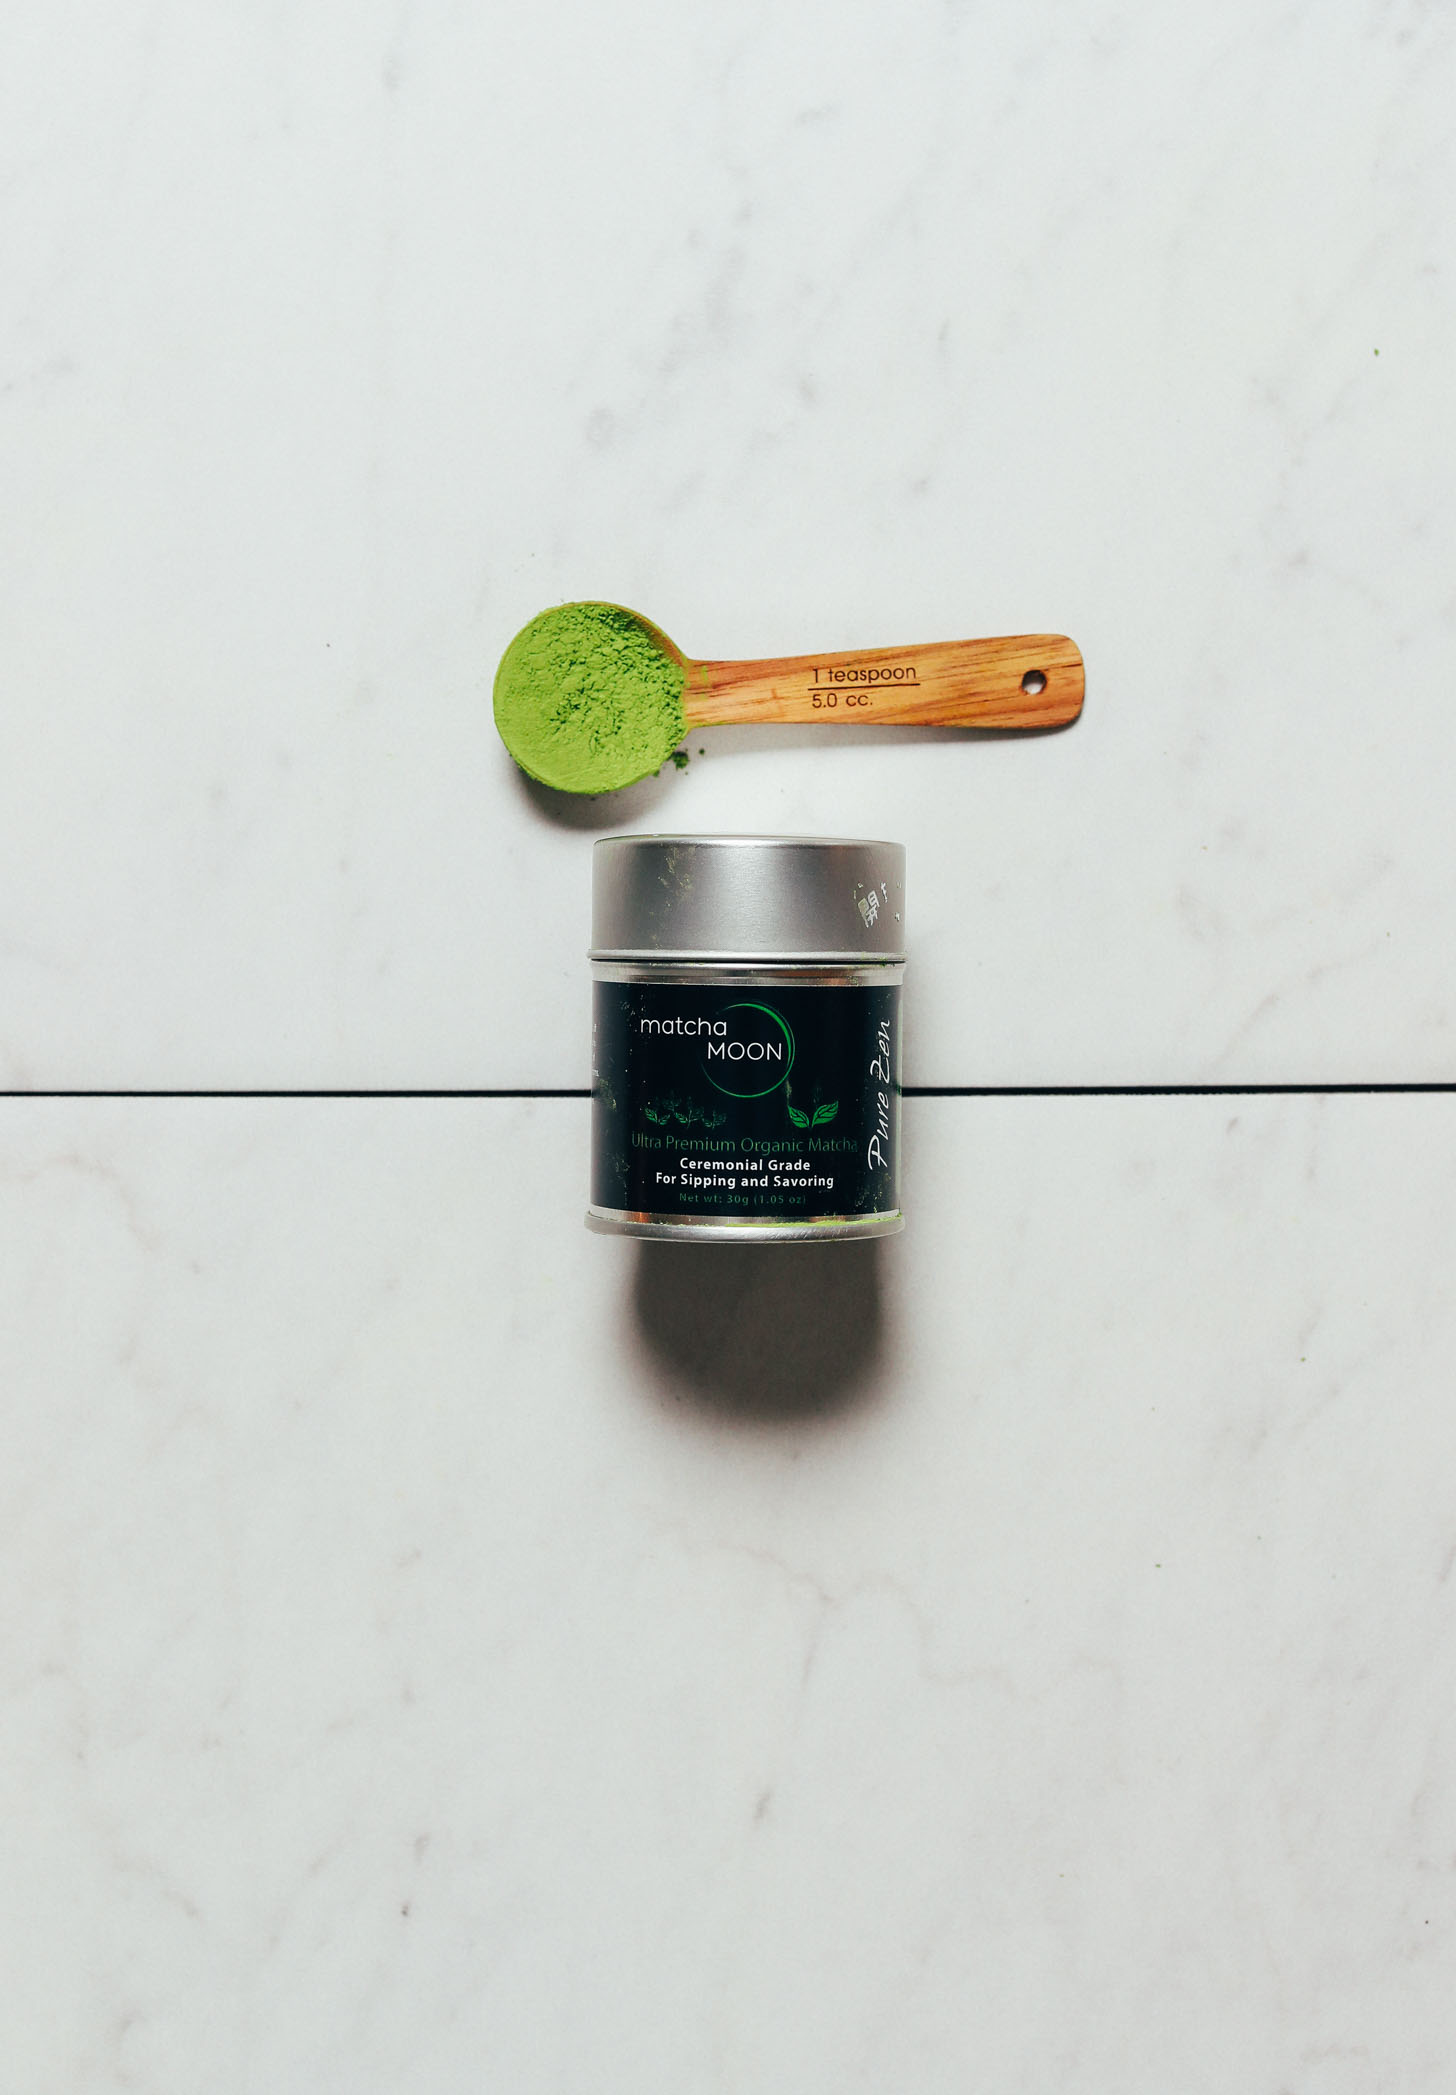 Spoonful and jar of Matcha Moon for our review of the best brands of ceremonial matcha